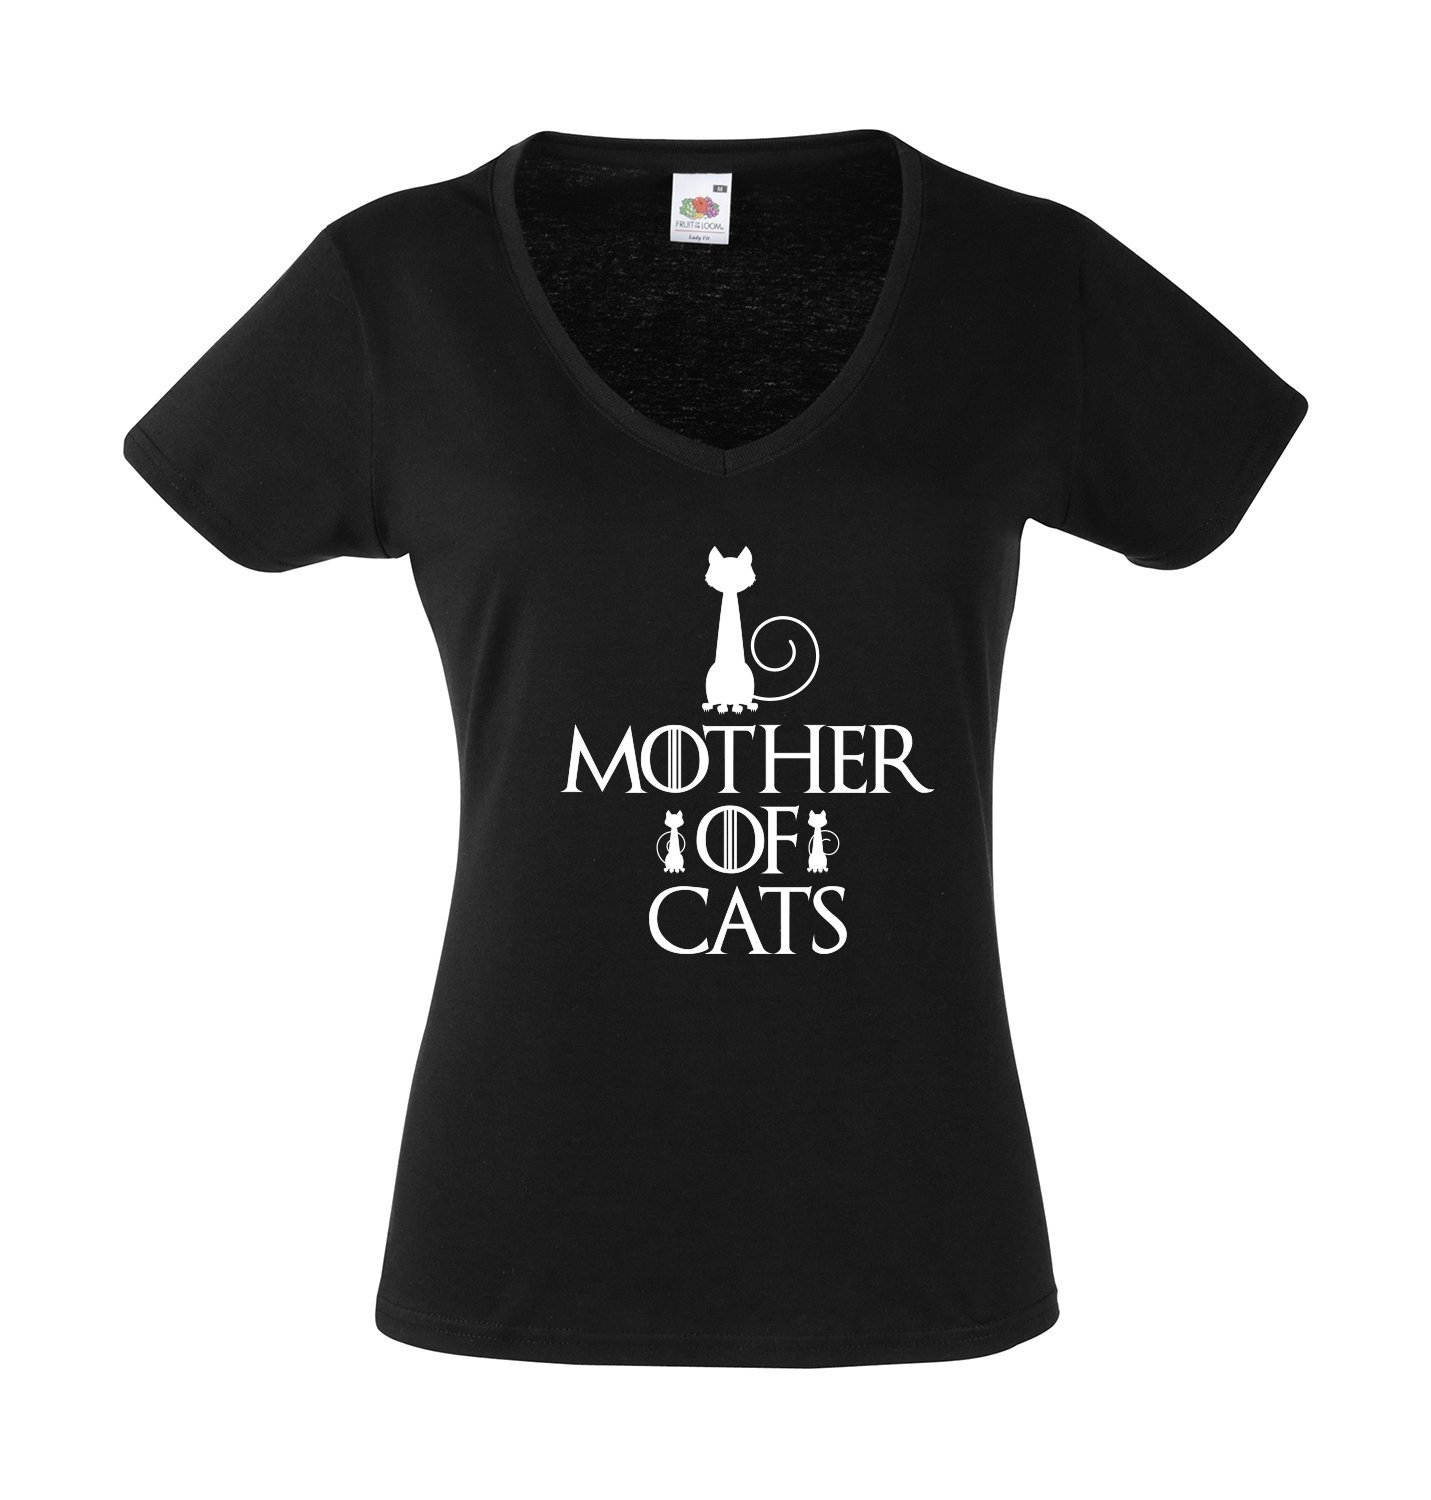 Tee shirt femme Mother of Cats, Game of Thrones, daenerys, dragons, GOT